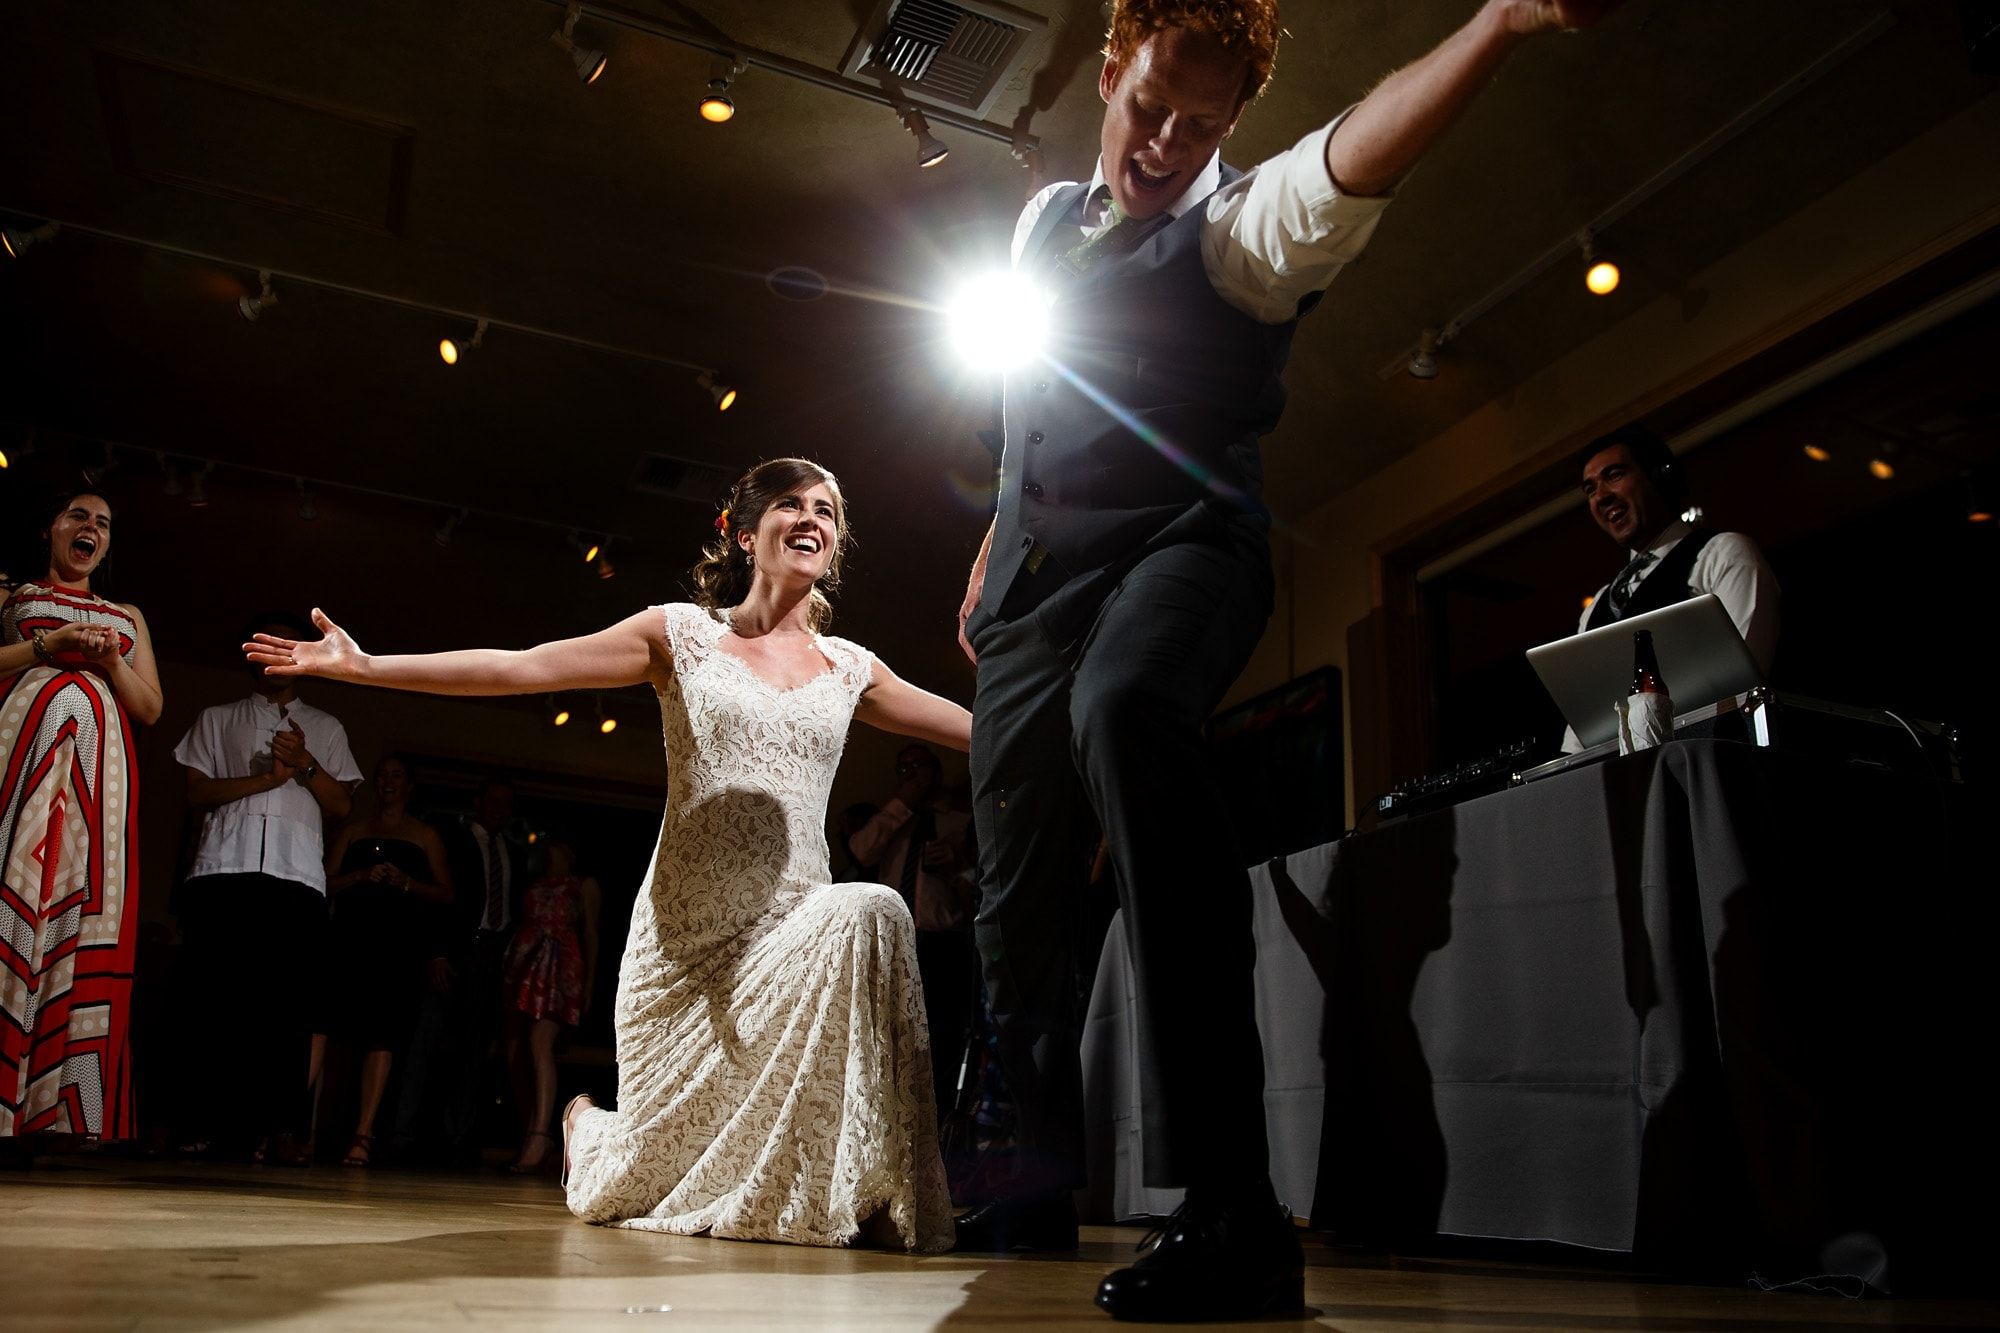 The bride dances with the groom at Rembrandt yard during their reception in Boulder